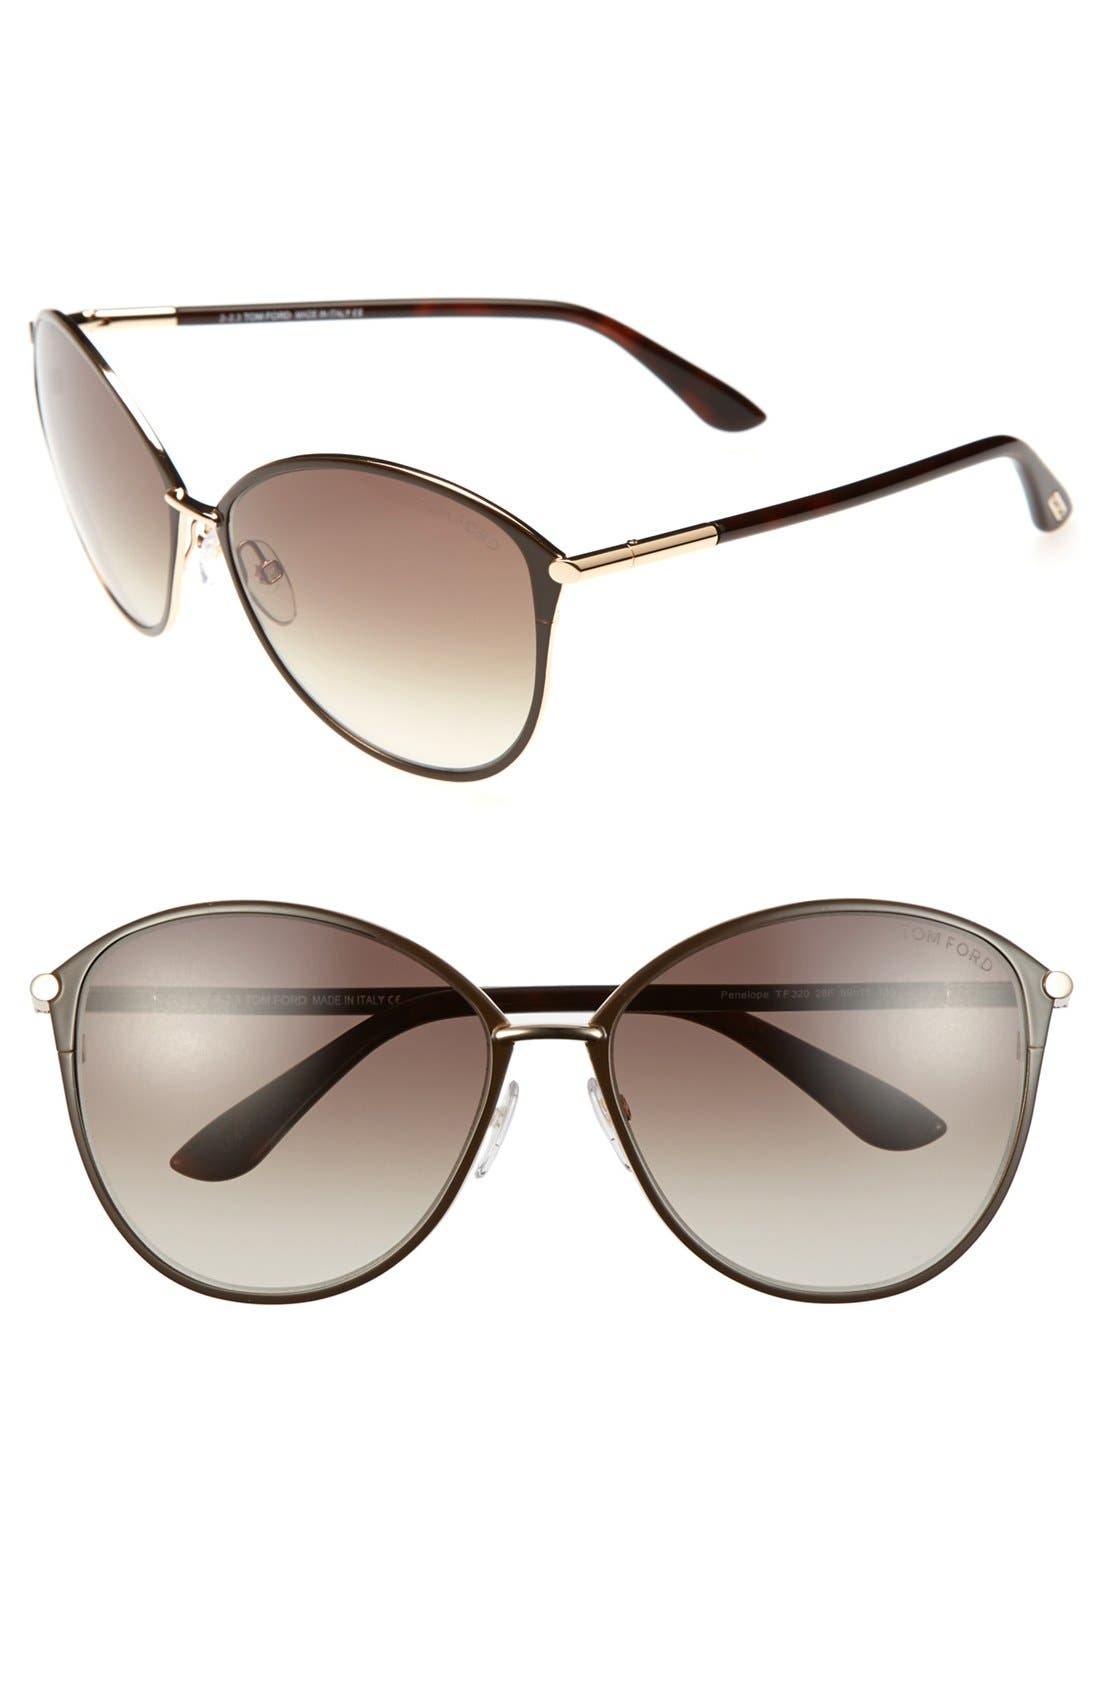 Penelope 59mm Gradient Cat Eye Sunglasses,                         Main,                         color, Shiny Rose Gold/ Dark Brown